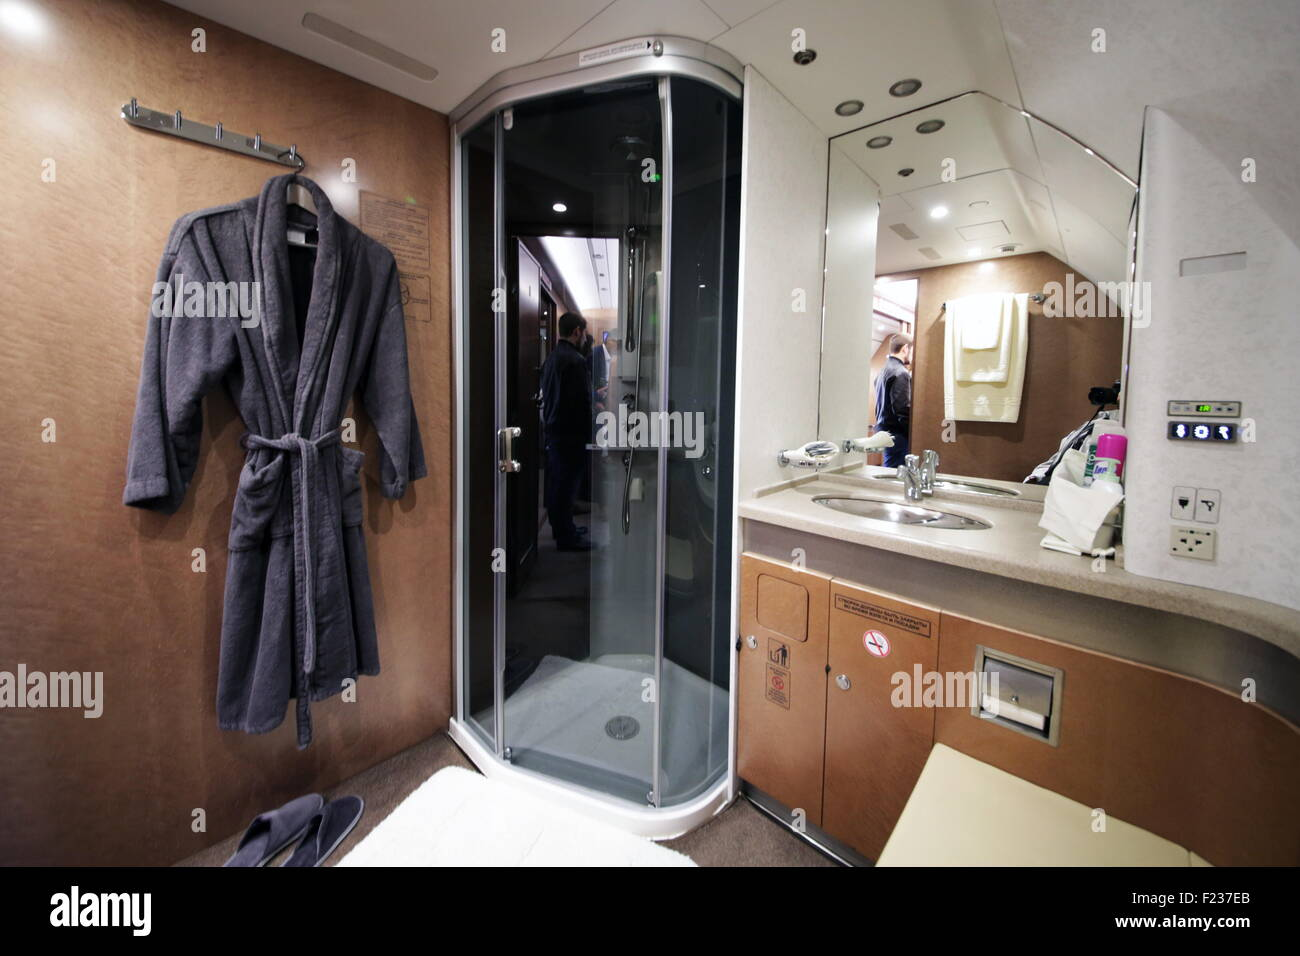 Exhibition Booth En Francais : Moscow russia th sep a shower booth in tu